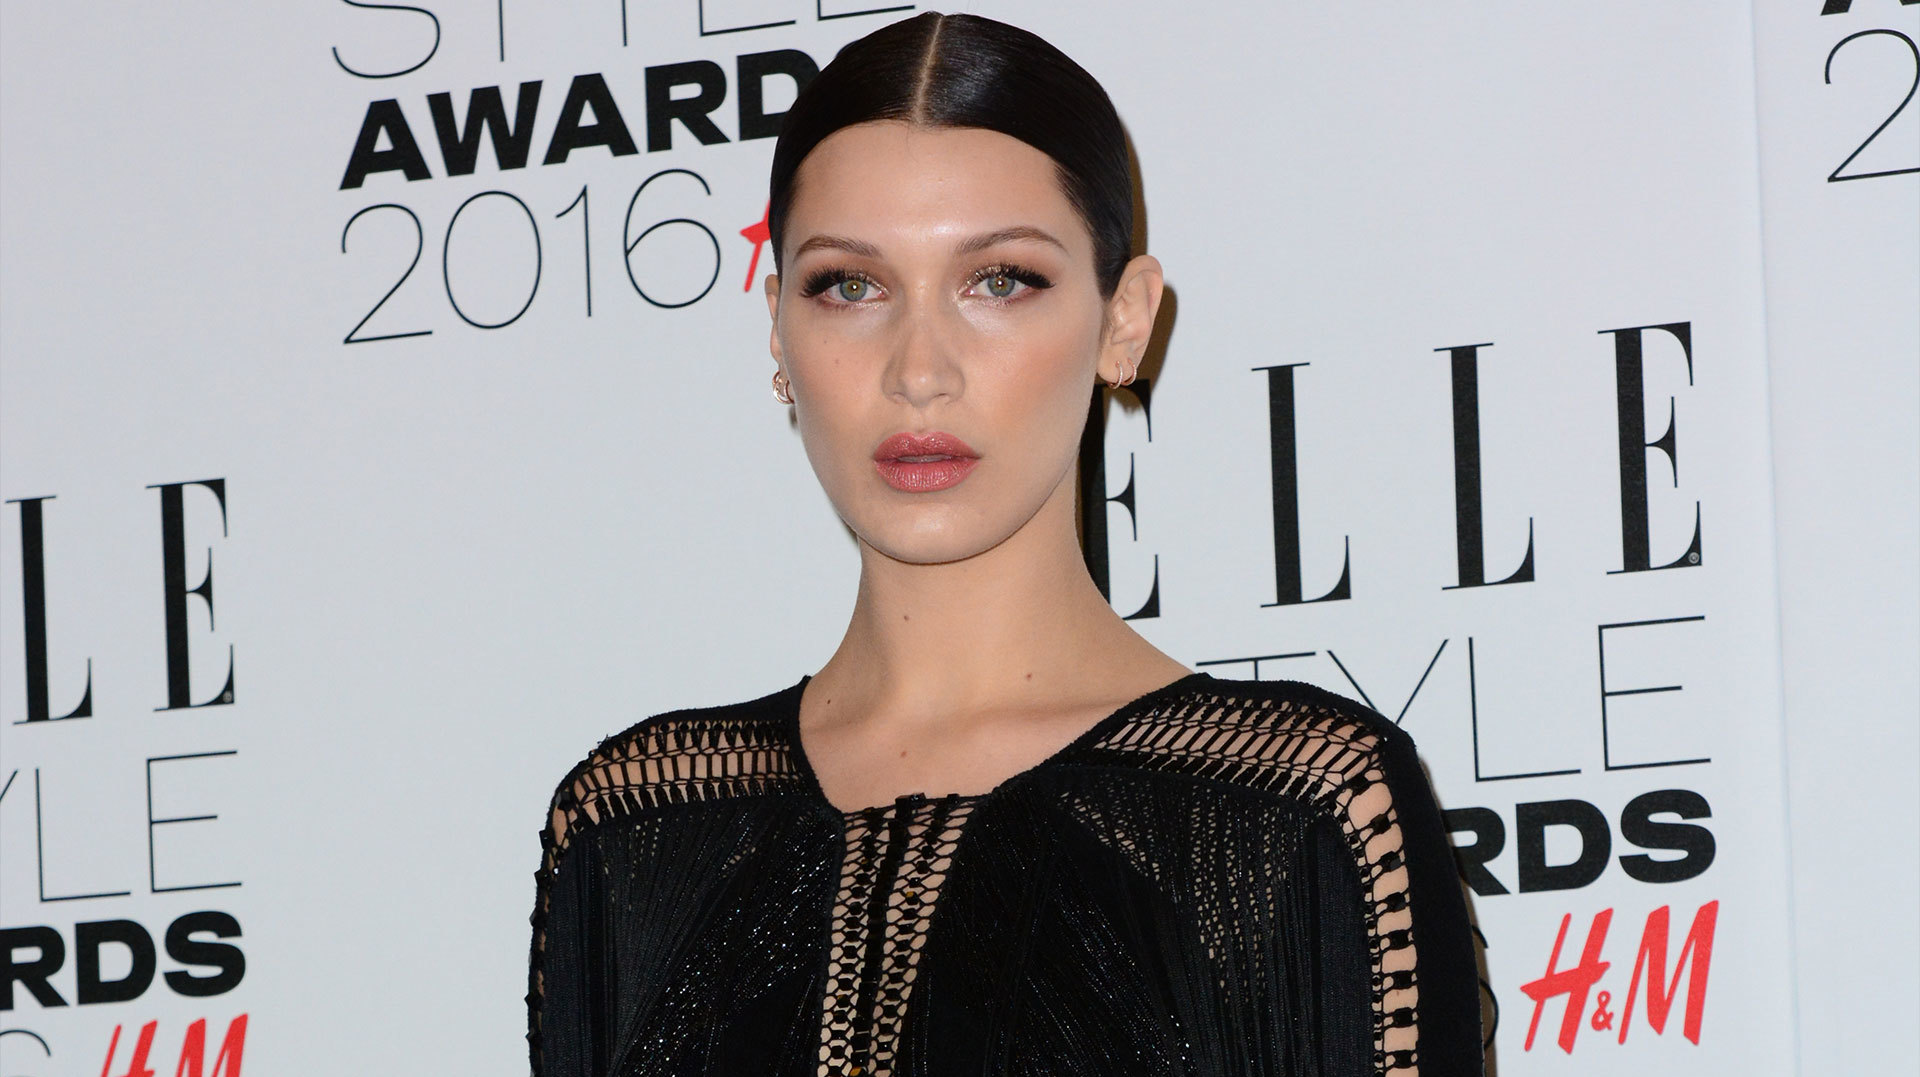 Bella Hadid Elle Style Awards © Joe Alvarez